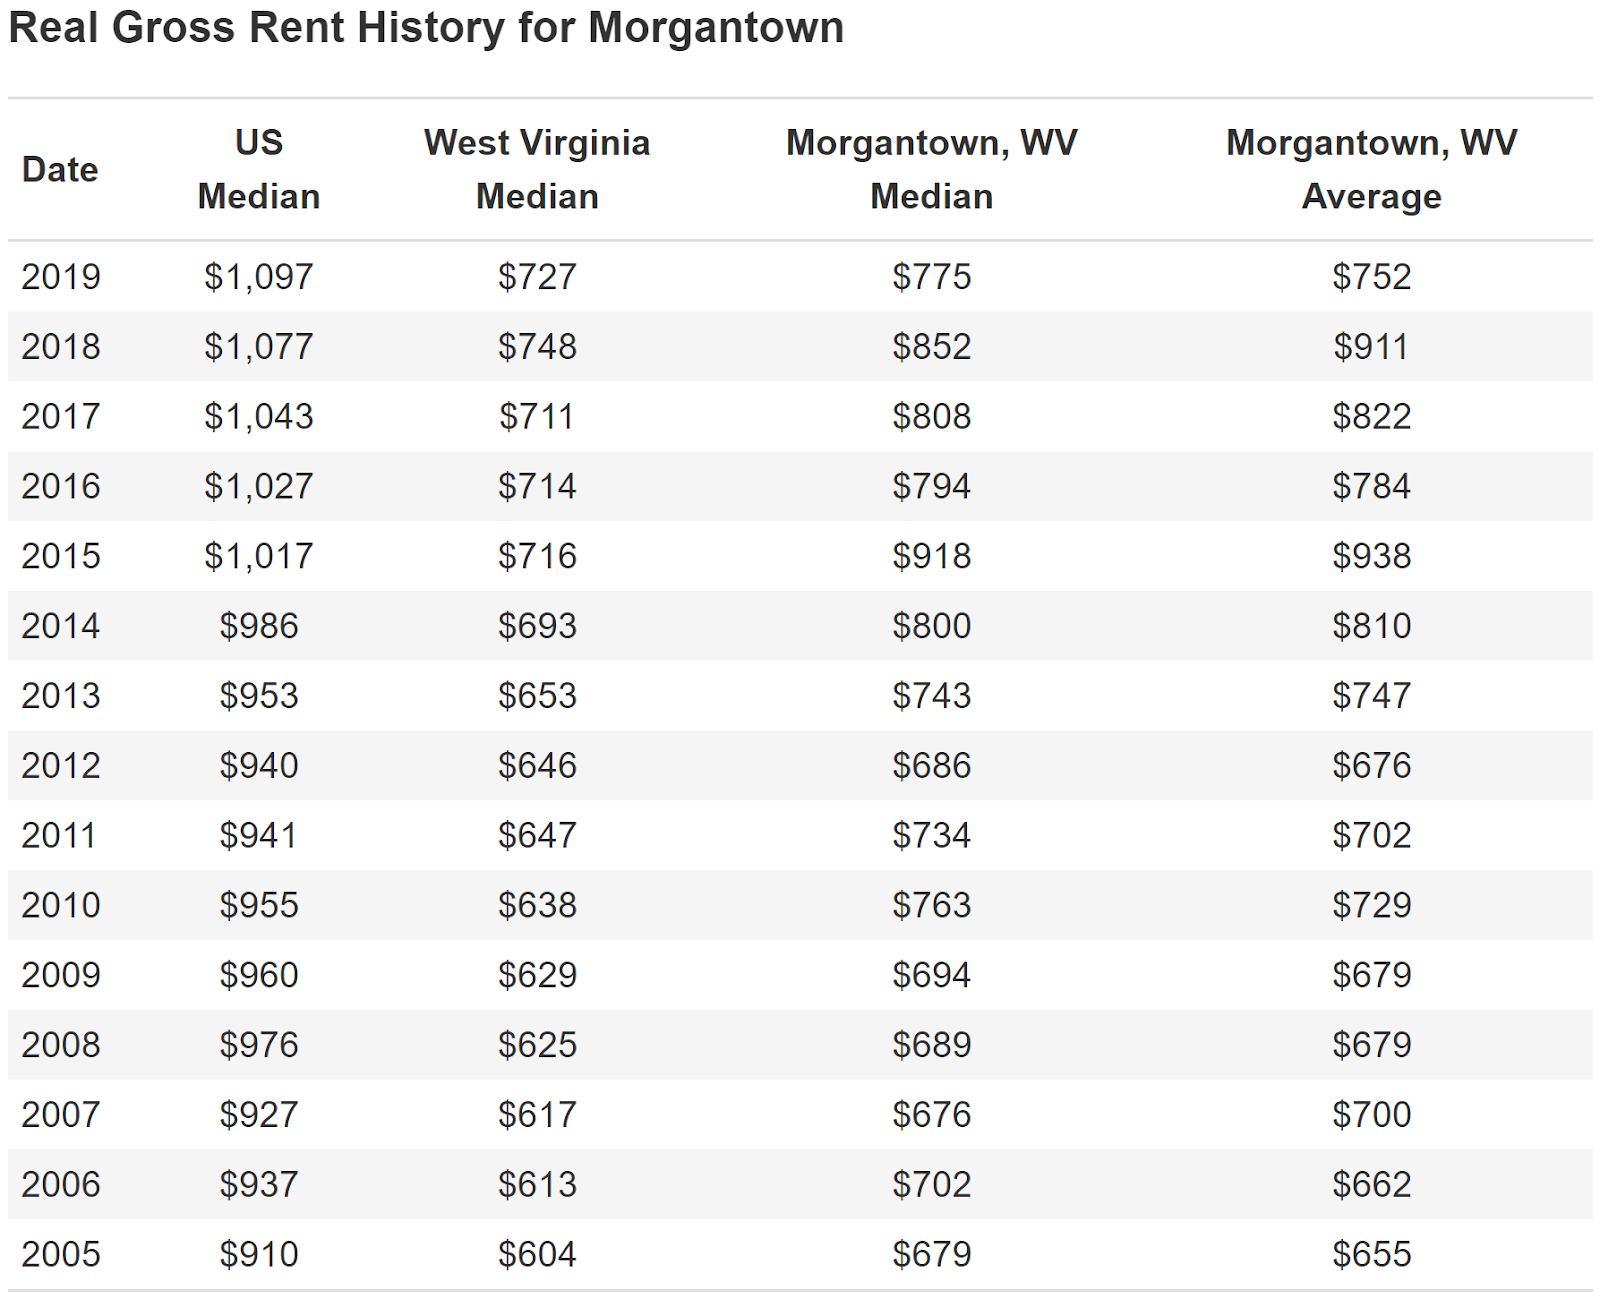 Real Gross Rent History for Morgantown Date 2019 2018 2017 2016 2015 2014 2013 2012 2011 2010 2009 2008 2007 2006 2005 US Median $1,097 $1,077 $1,043 $1,027 $1,017 $986 $953 $940 $941 $955 $960 $976 $927 $937 $910 West Virginia Median $727 $748 $711 $714 $716 $693 $653 $646 S647 $638 S629 S625 S617 $613 S604 Morgantown, WV Median $775 $852 $808 $794 $918 $800 S743 $686 S734 S763 S694 $689 S676 S702 S679 Morgantown, WV Average $752 $911 $822 $784 $938 $810 $747 $676 $702 $729 $679 $679 $700 S662 $655